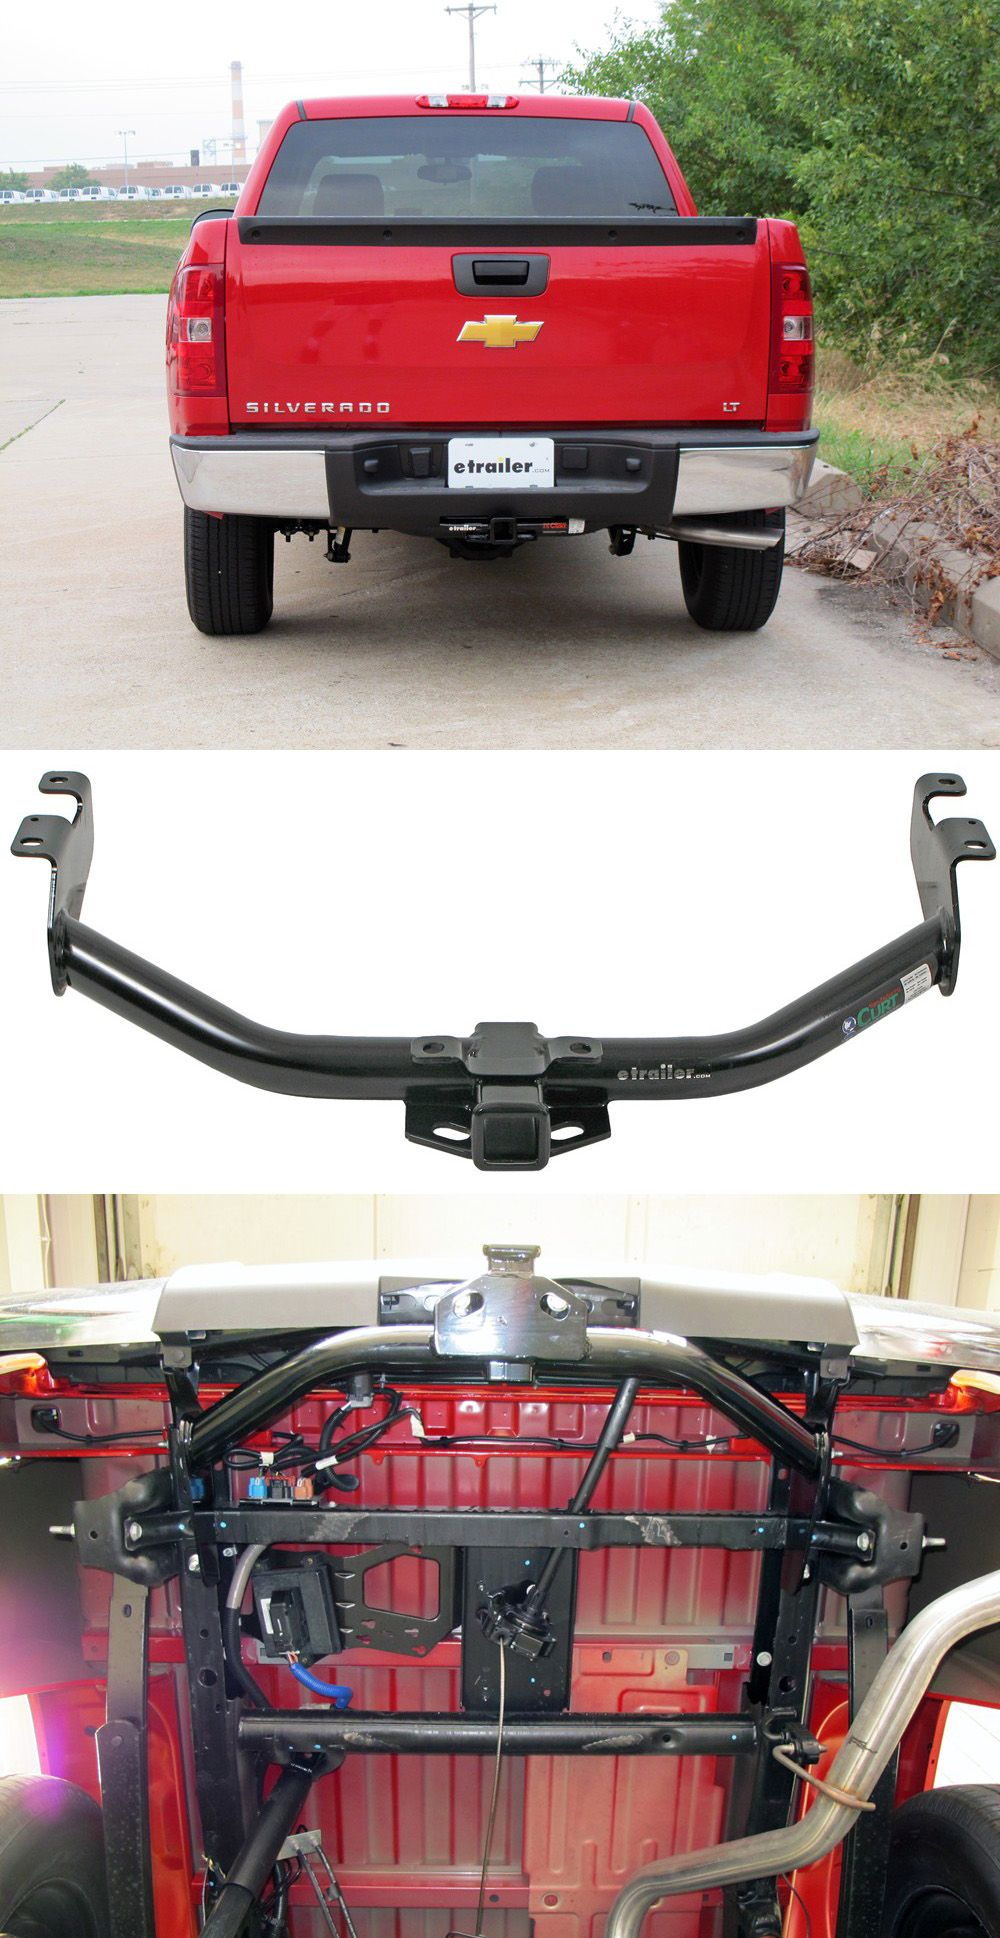 Curt Trailer Hitch Receiver Custom Fit Class Iii 2 Truck T Connector Wiring Kit This Fully Welded Bolts Onto Your Chevy Silverados Frame With No Welding Required Designed For The Silverado